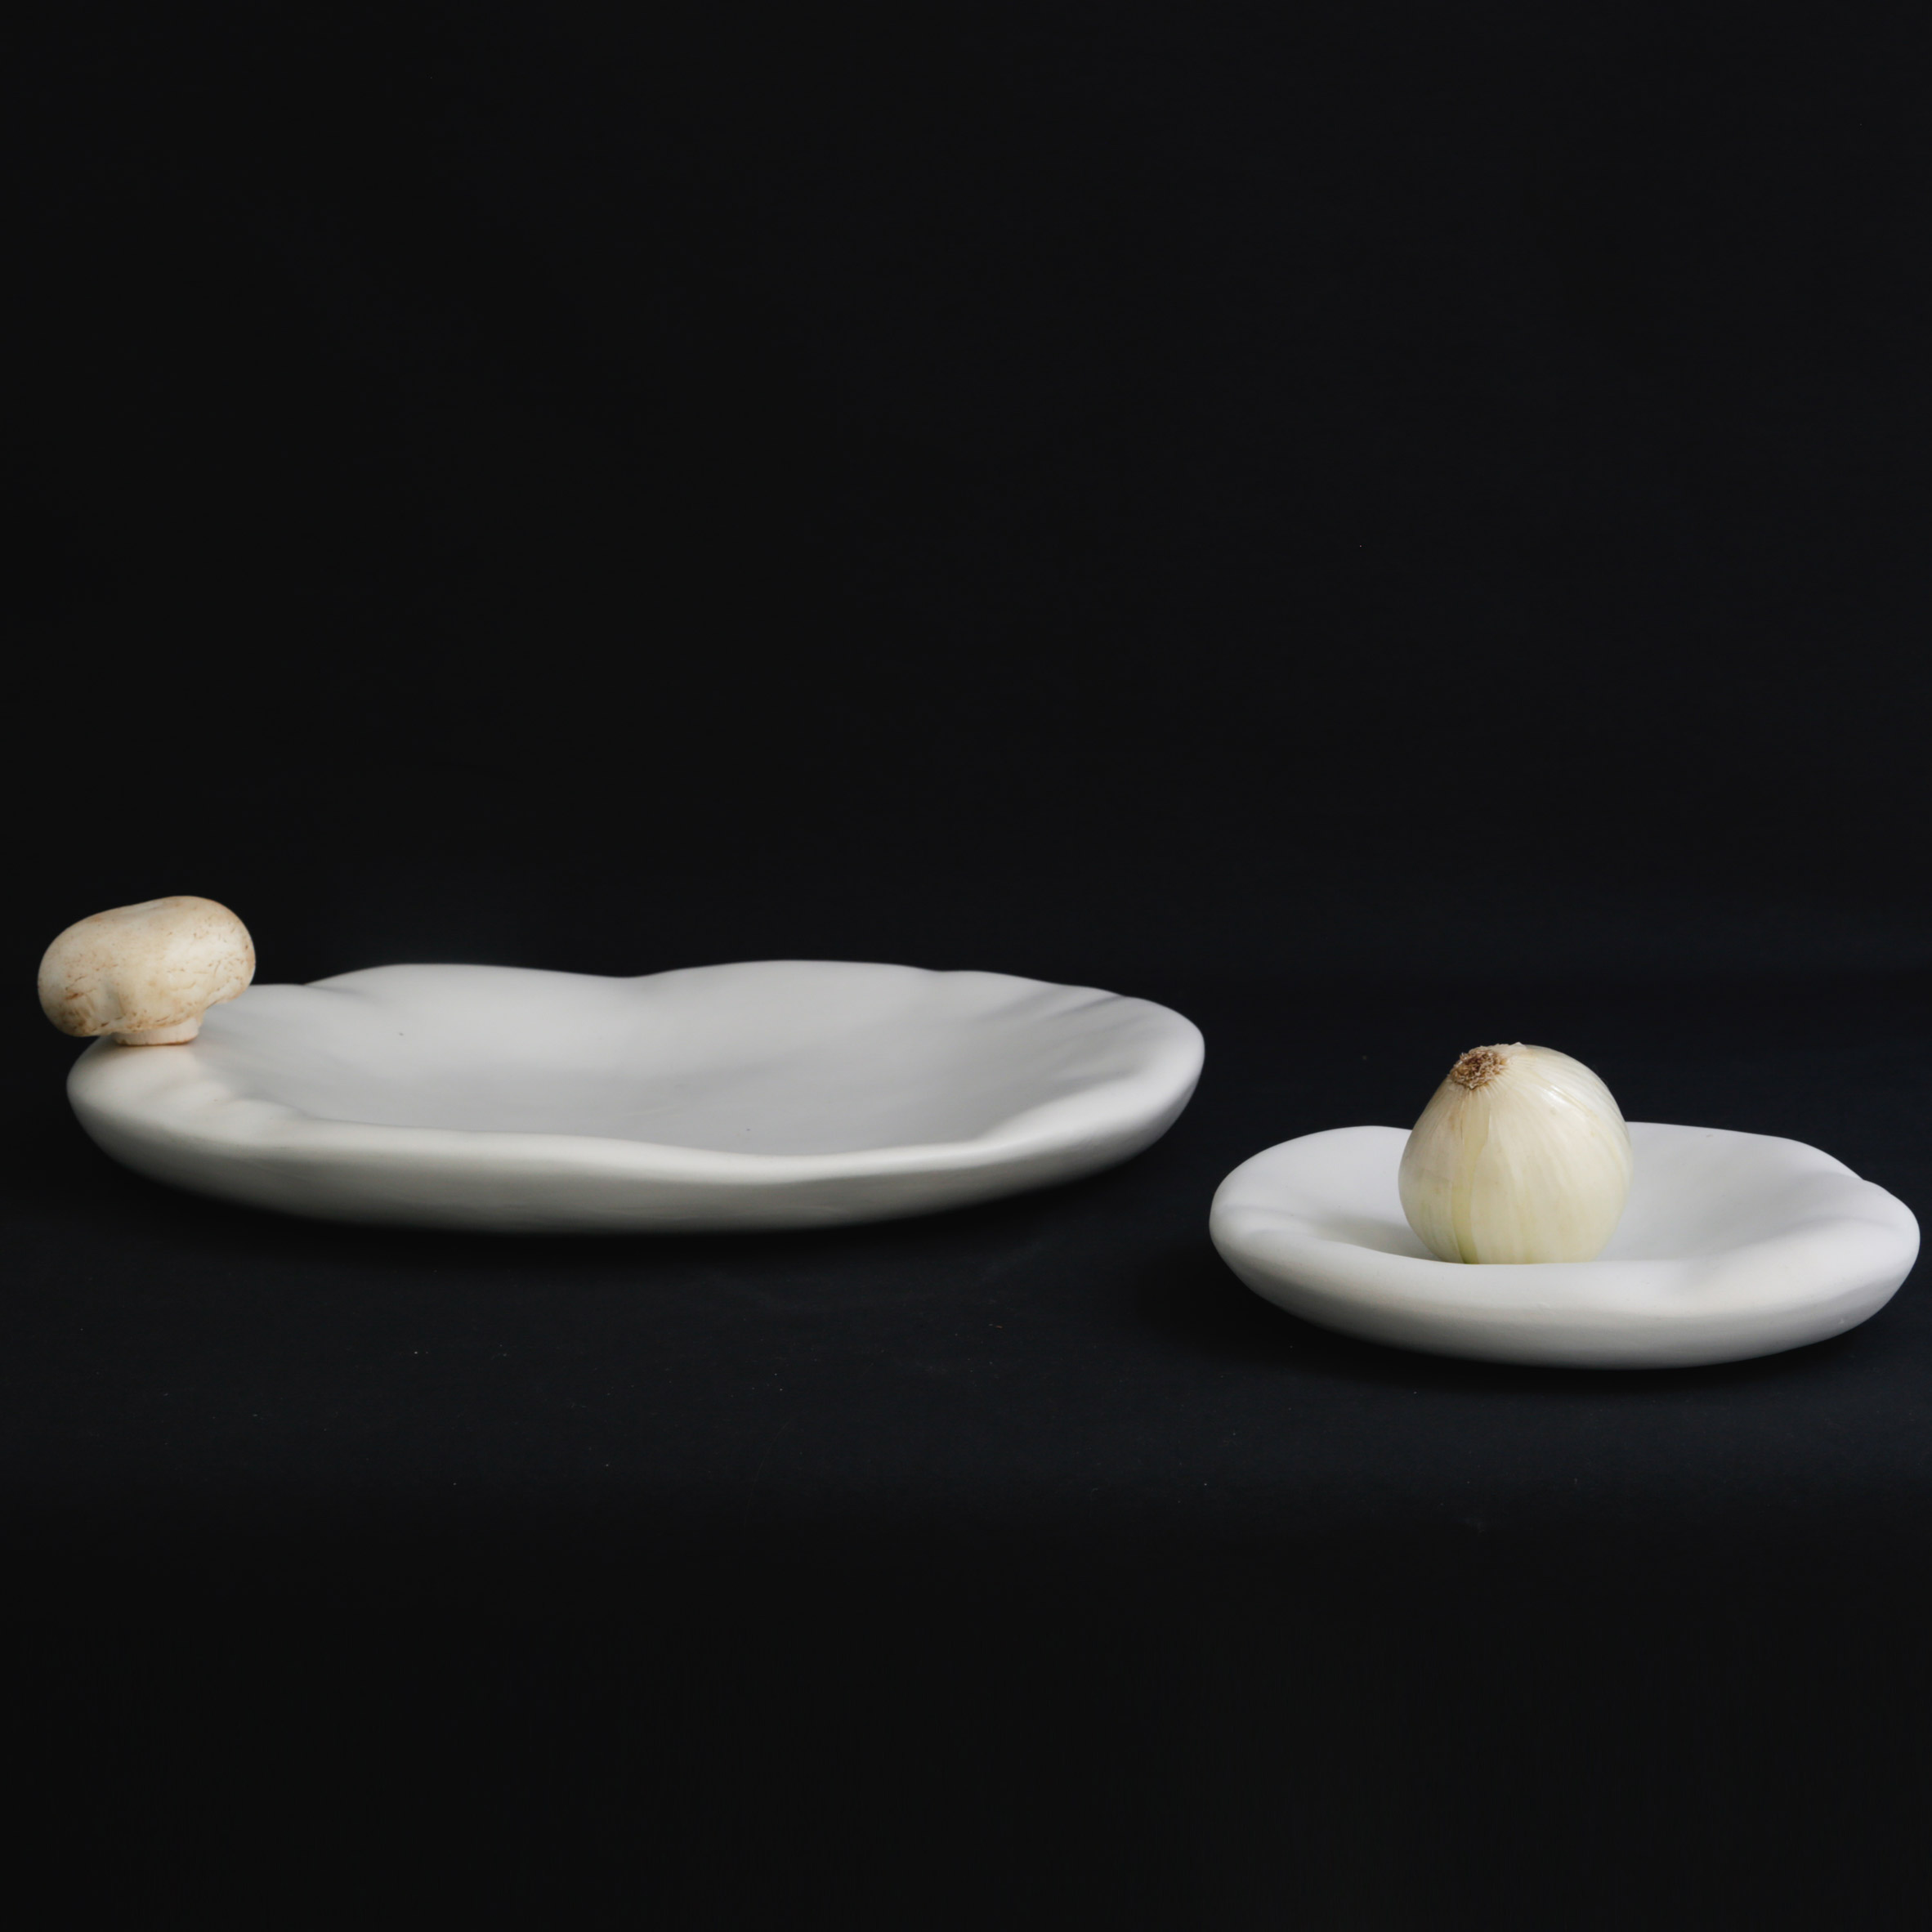 Constance Guisset designs puffed-up plates for Moustache